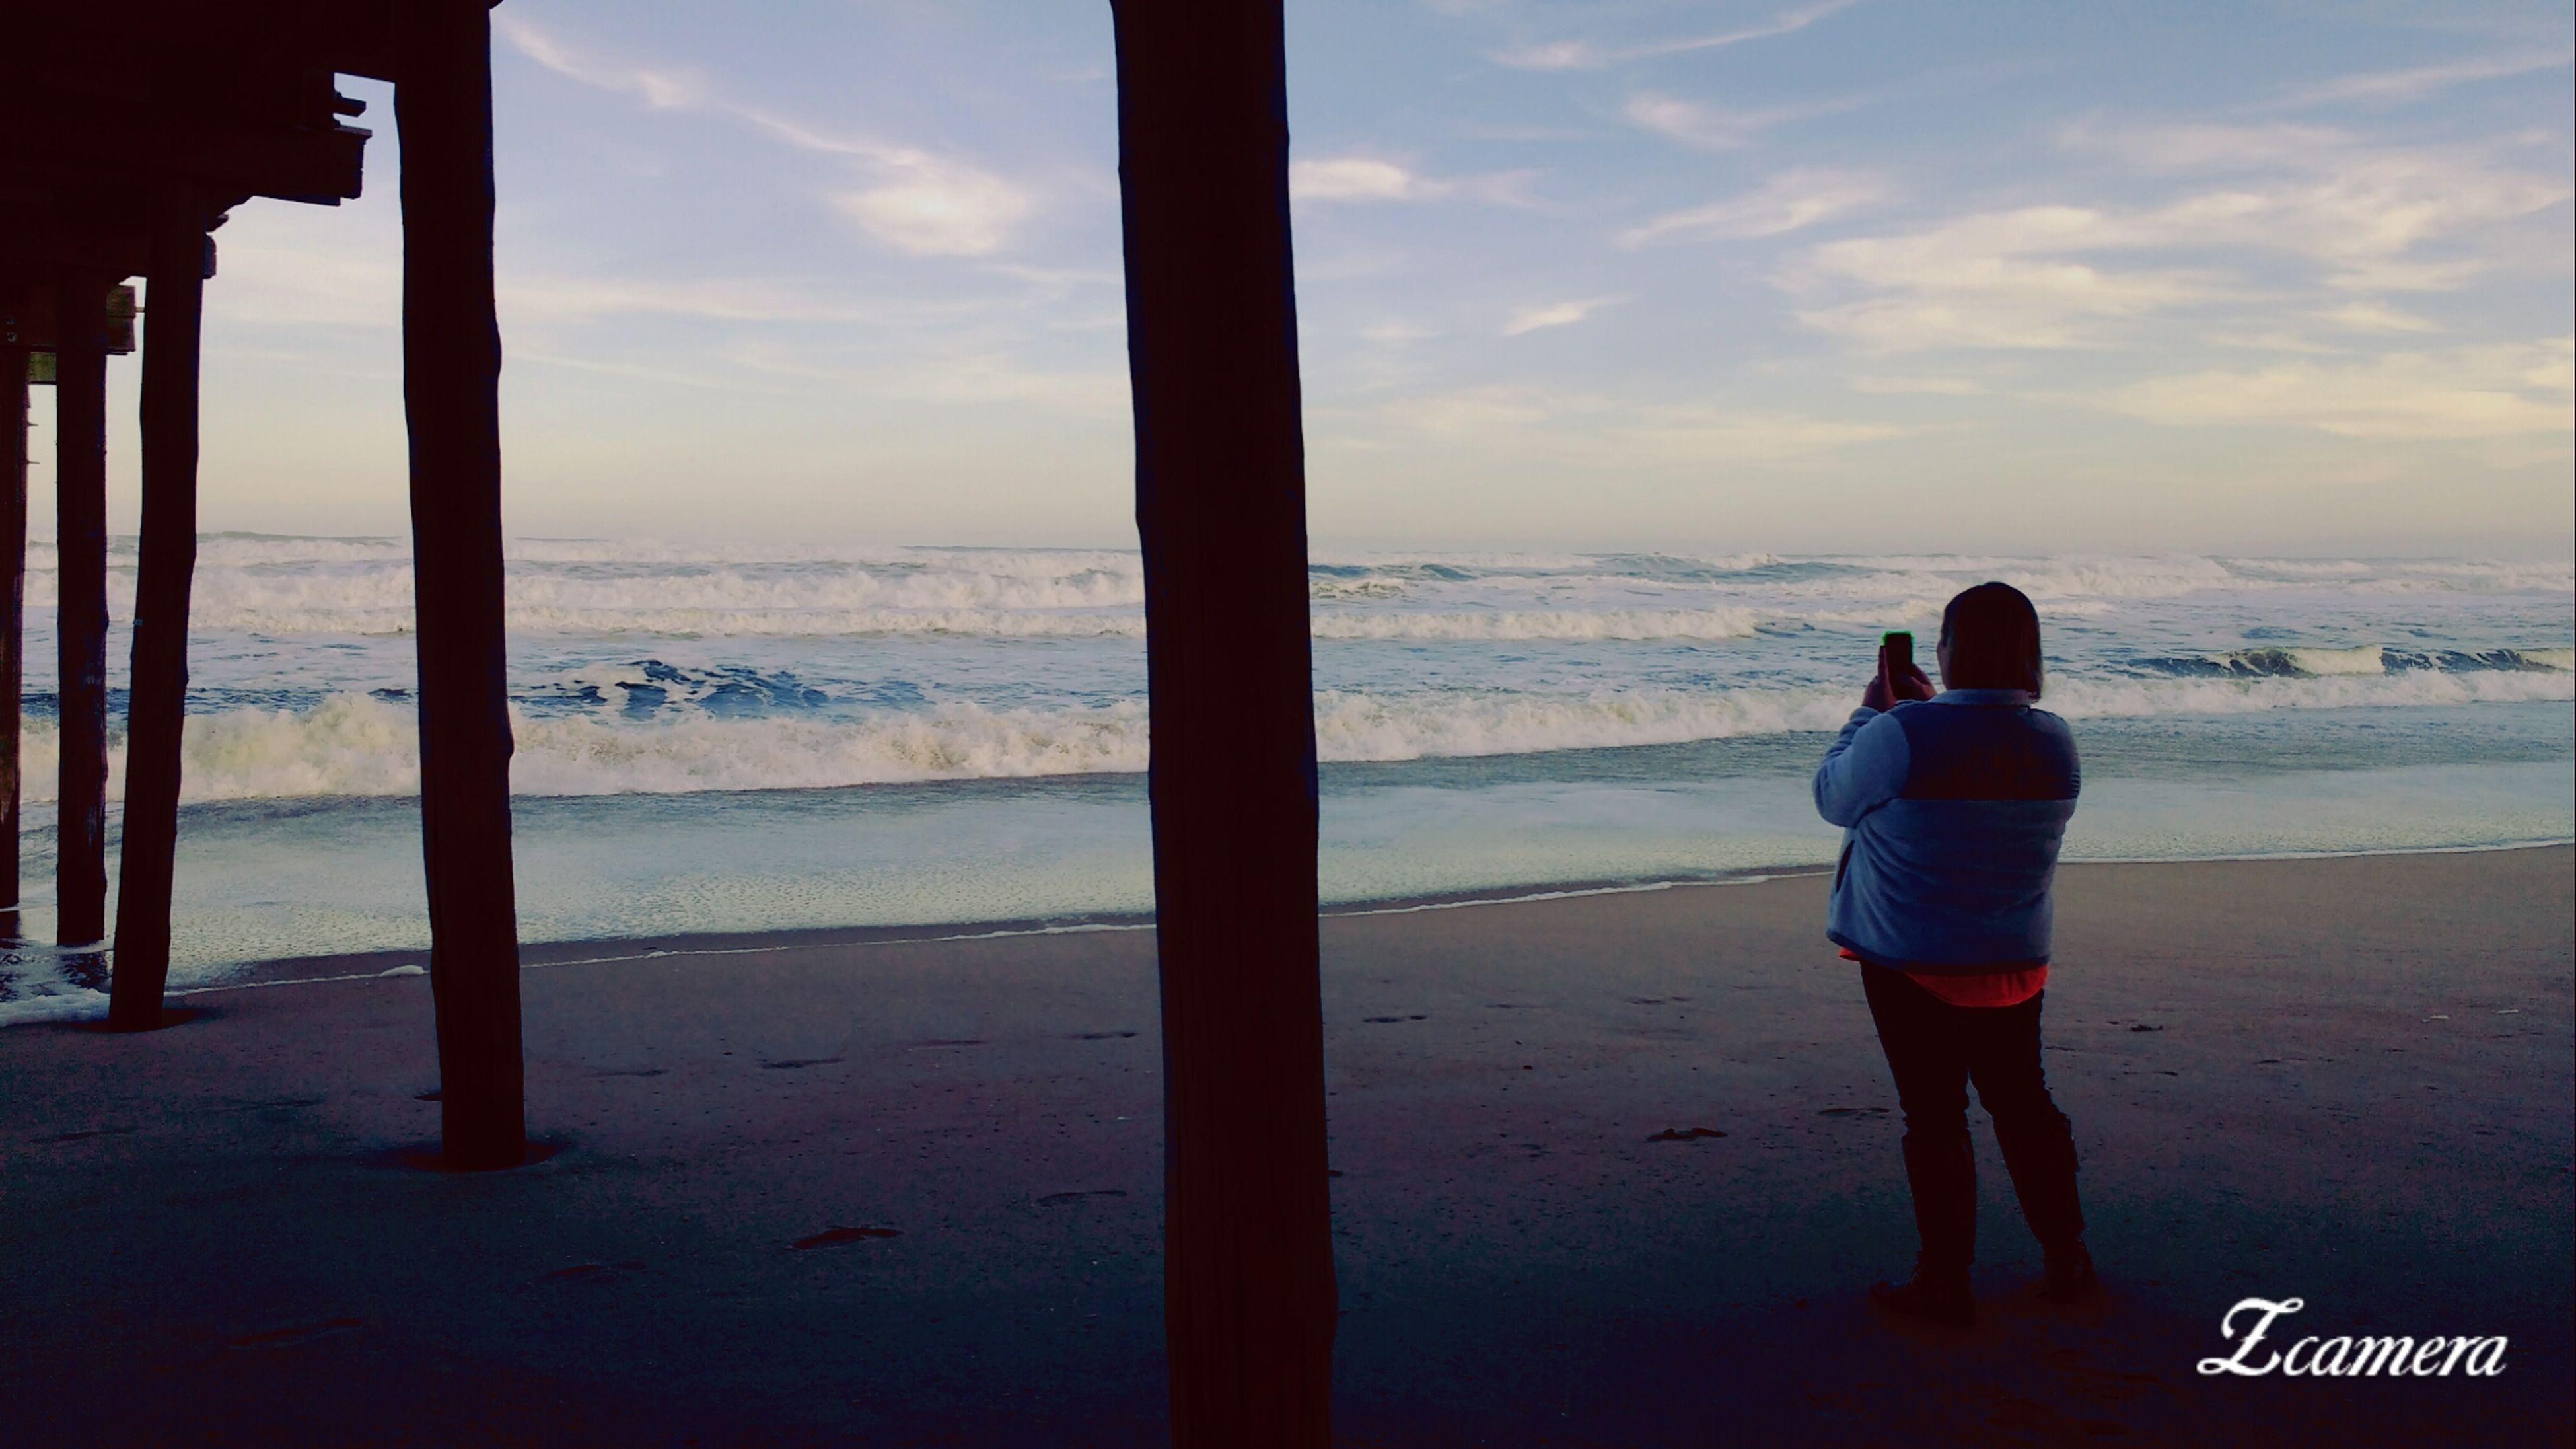 sea, standing, water, real people, full length, beach, beauty in nature, horizon over water, nature, lifestyles, leisure activity, sky, one person, scenics, sunset, outdoors, tranquility, cloud - sky, women, day, men, photographer, people